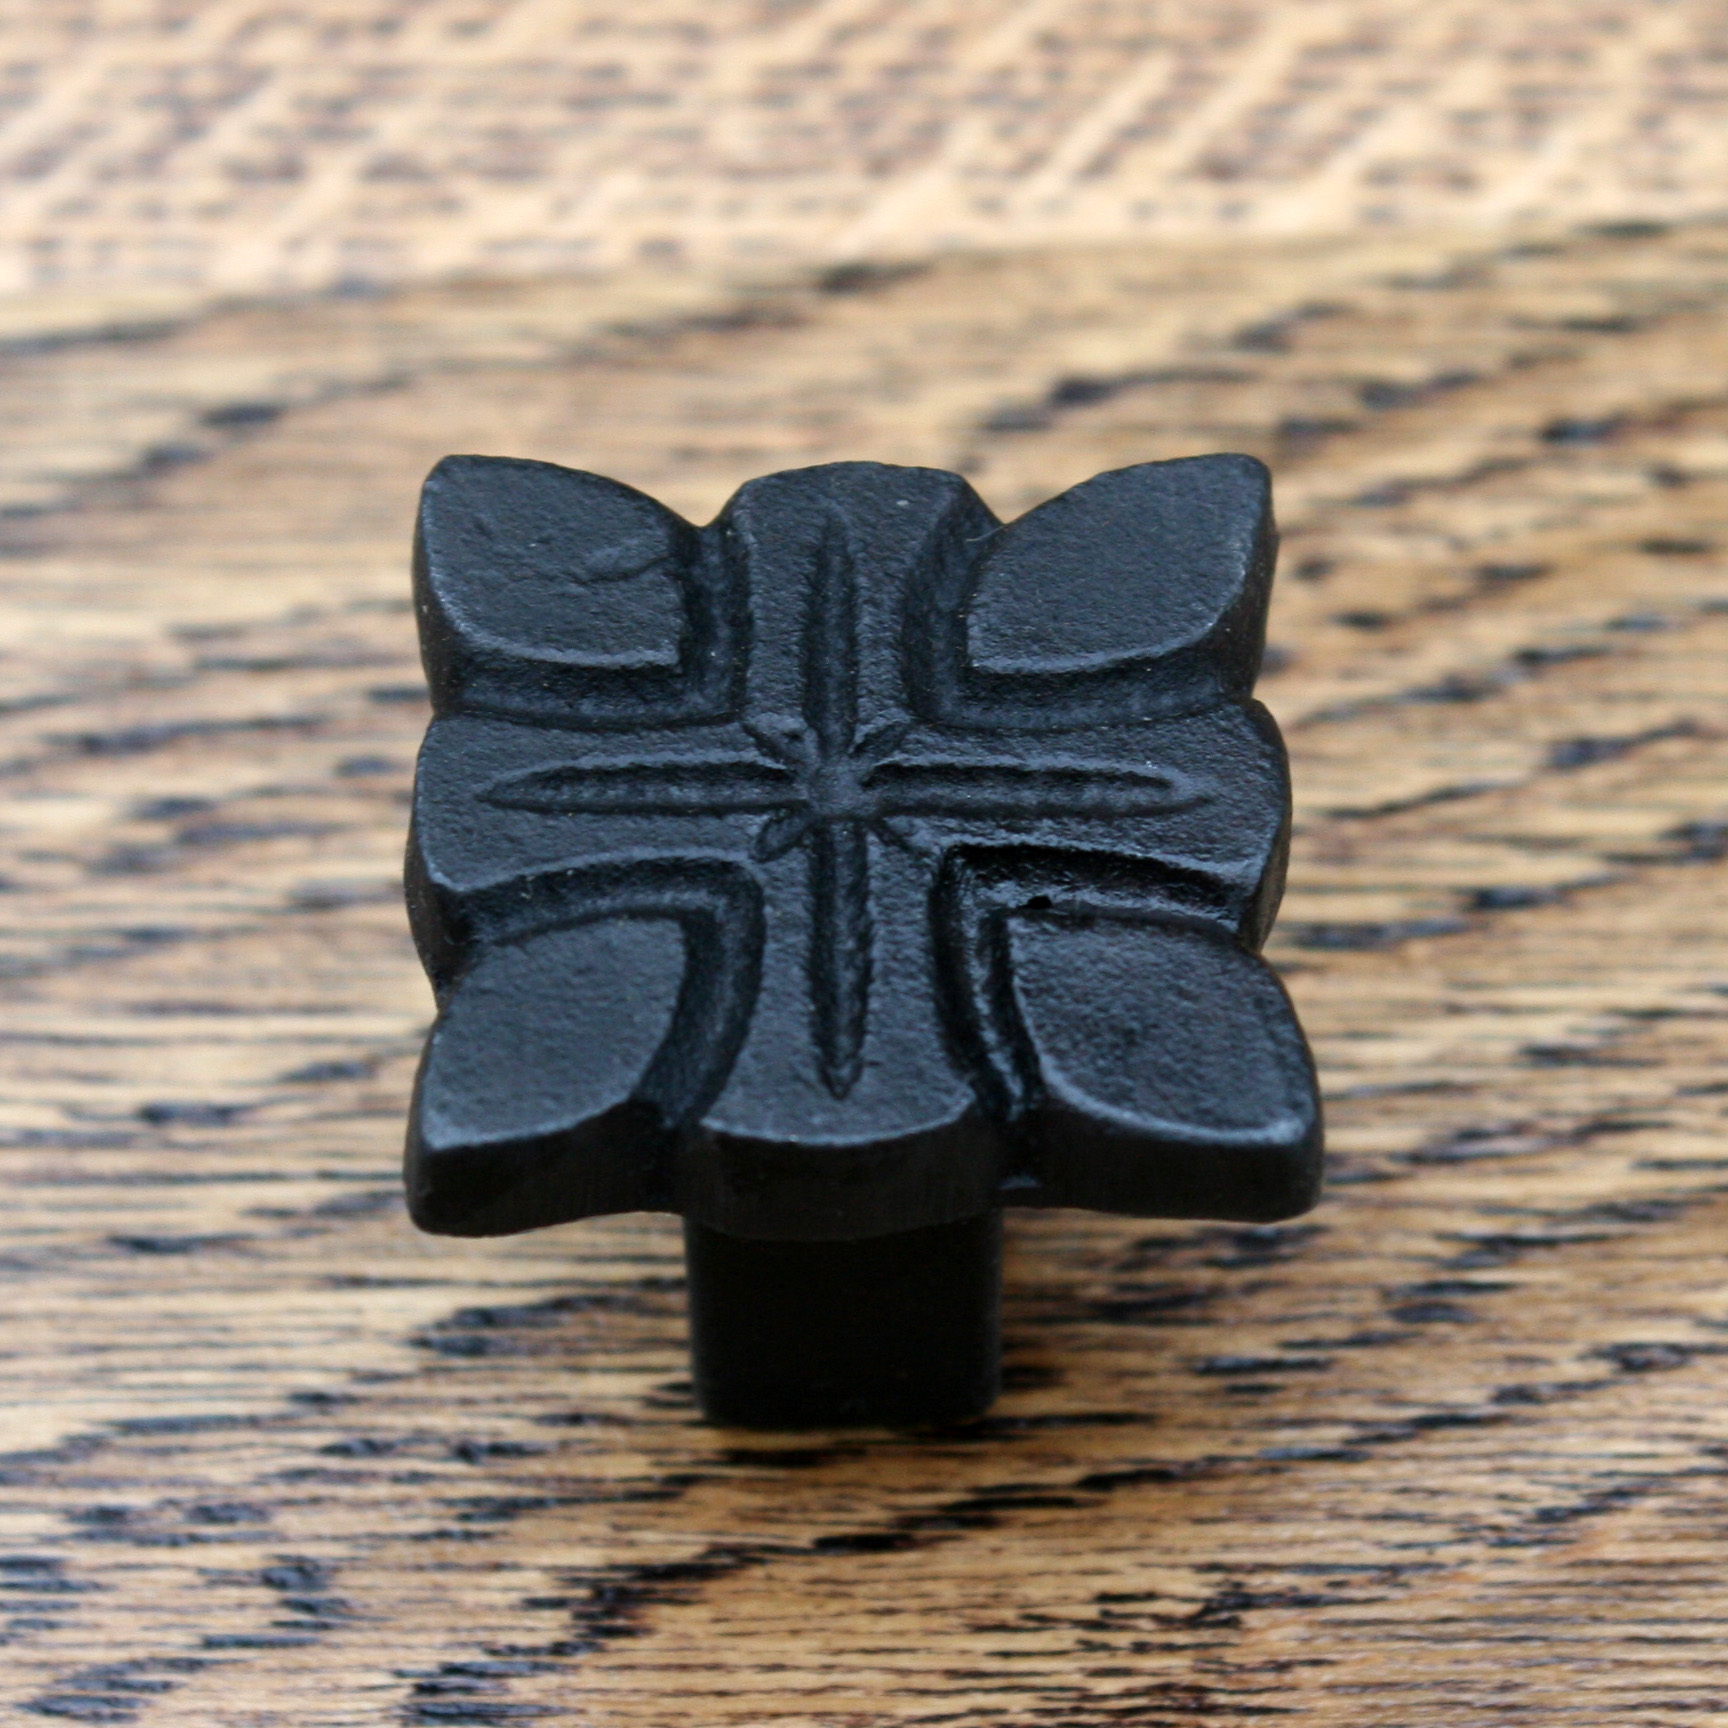 Knights Templar Style Cross Cast Iron Cabinet Knob 28mm